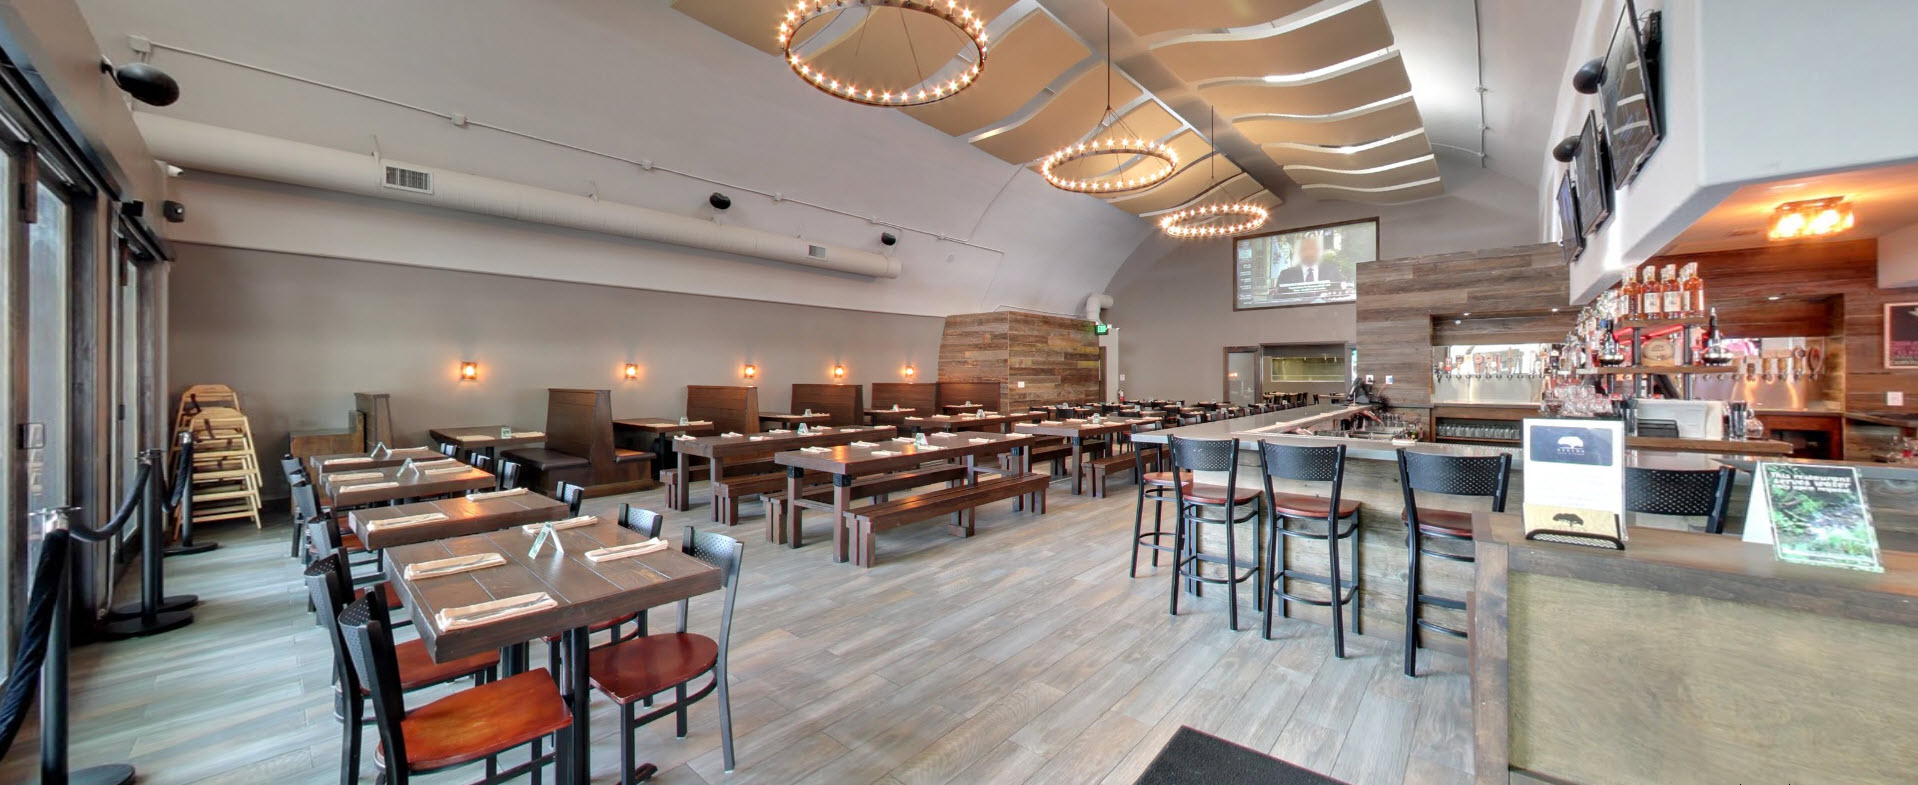 Affordable Seating Helps Steins Beer Garden With Its Grand Opening Innovative Seating Blog